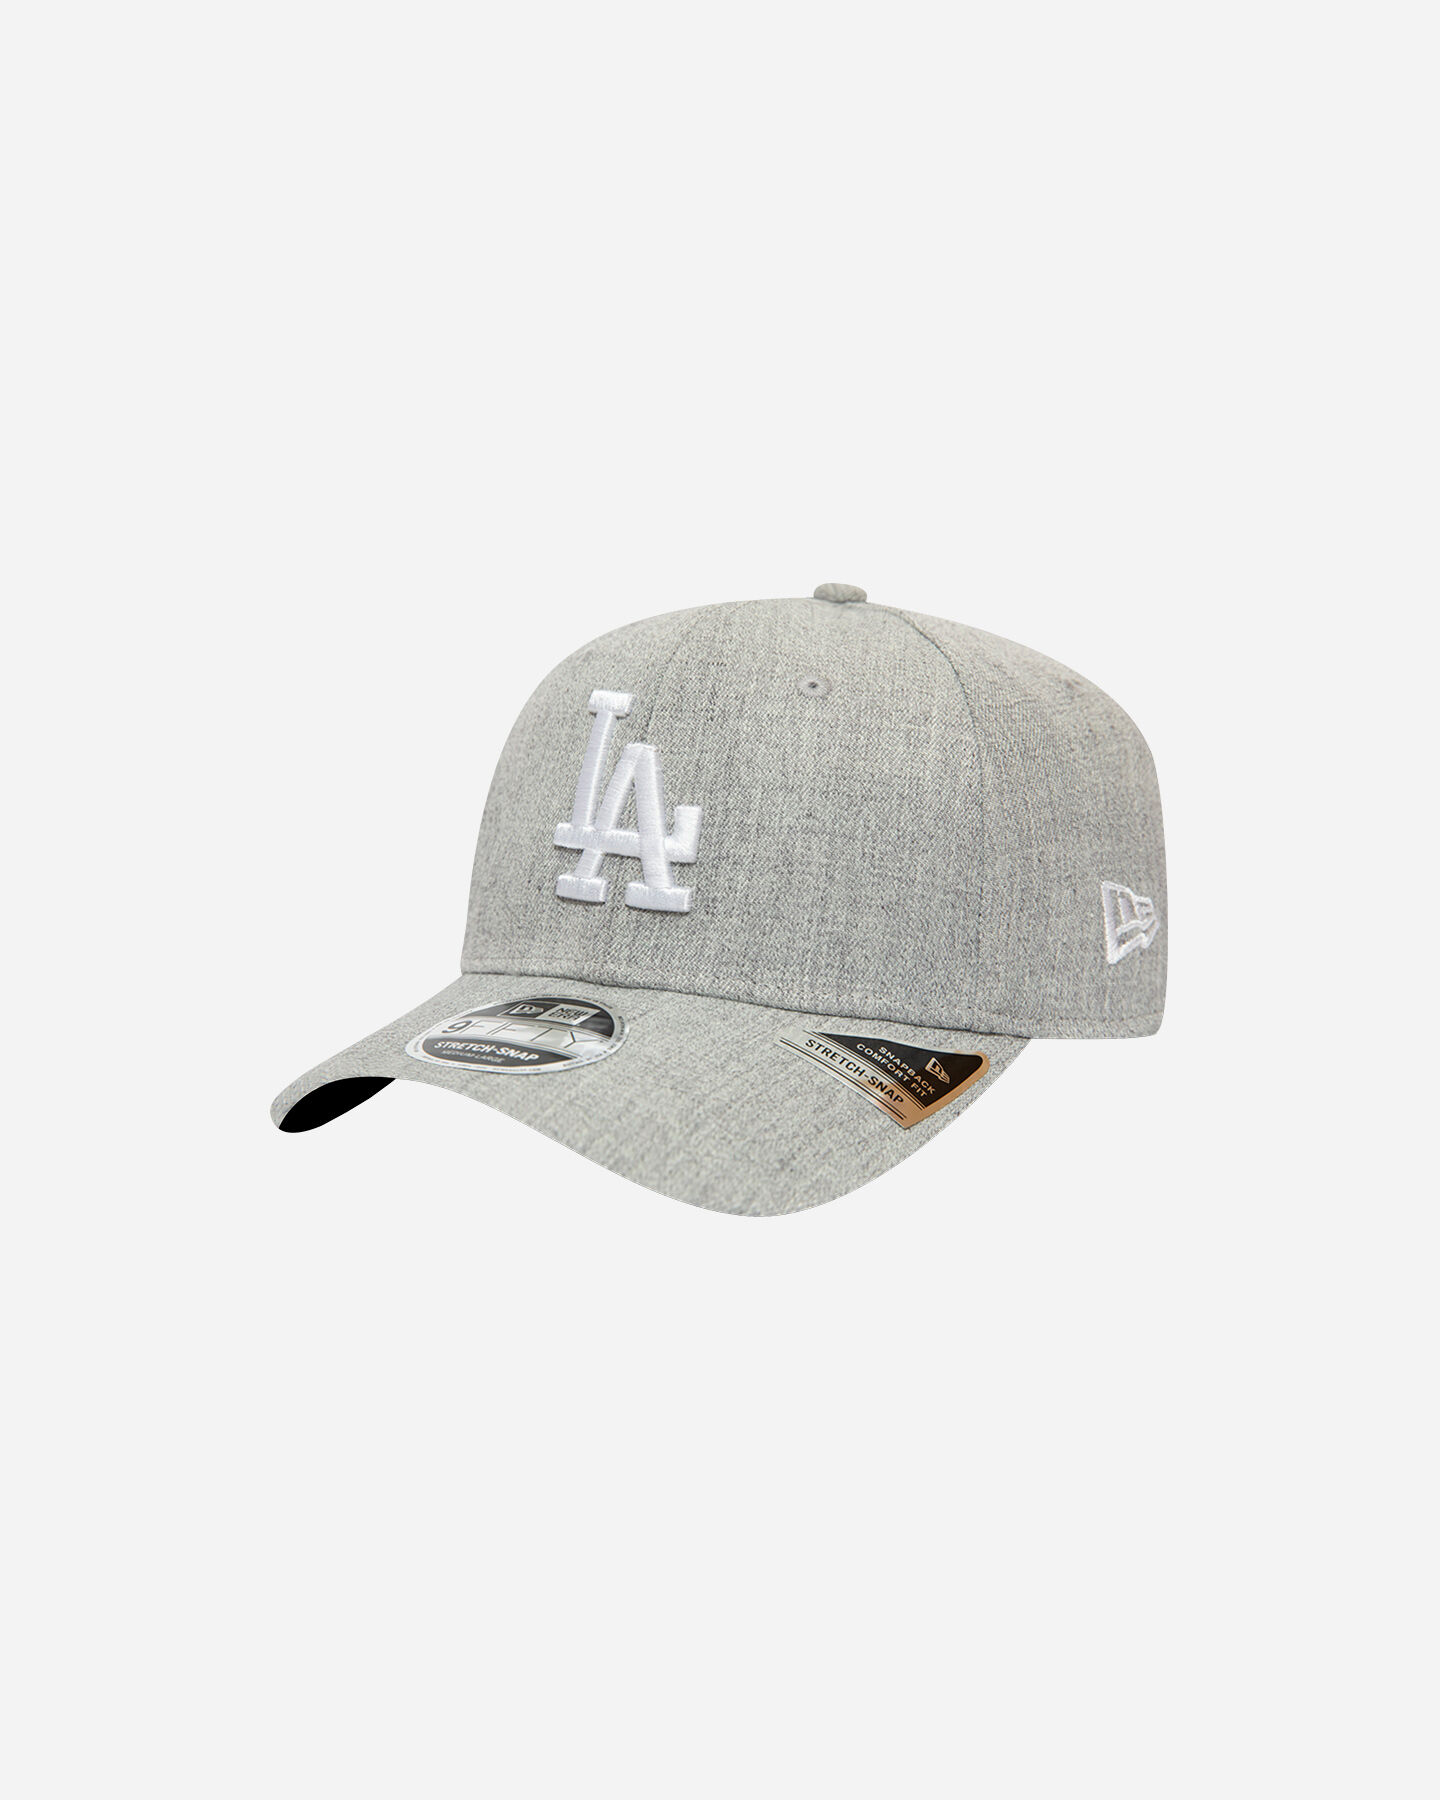 Cappellino NEW ERA LOS ANGELES DODGERS 9FIFTY HEATHER BASE S5170126 scatto 0